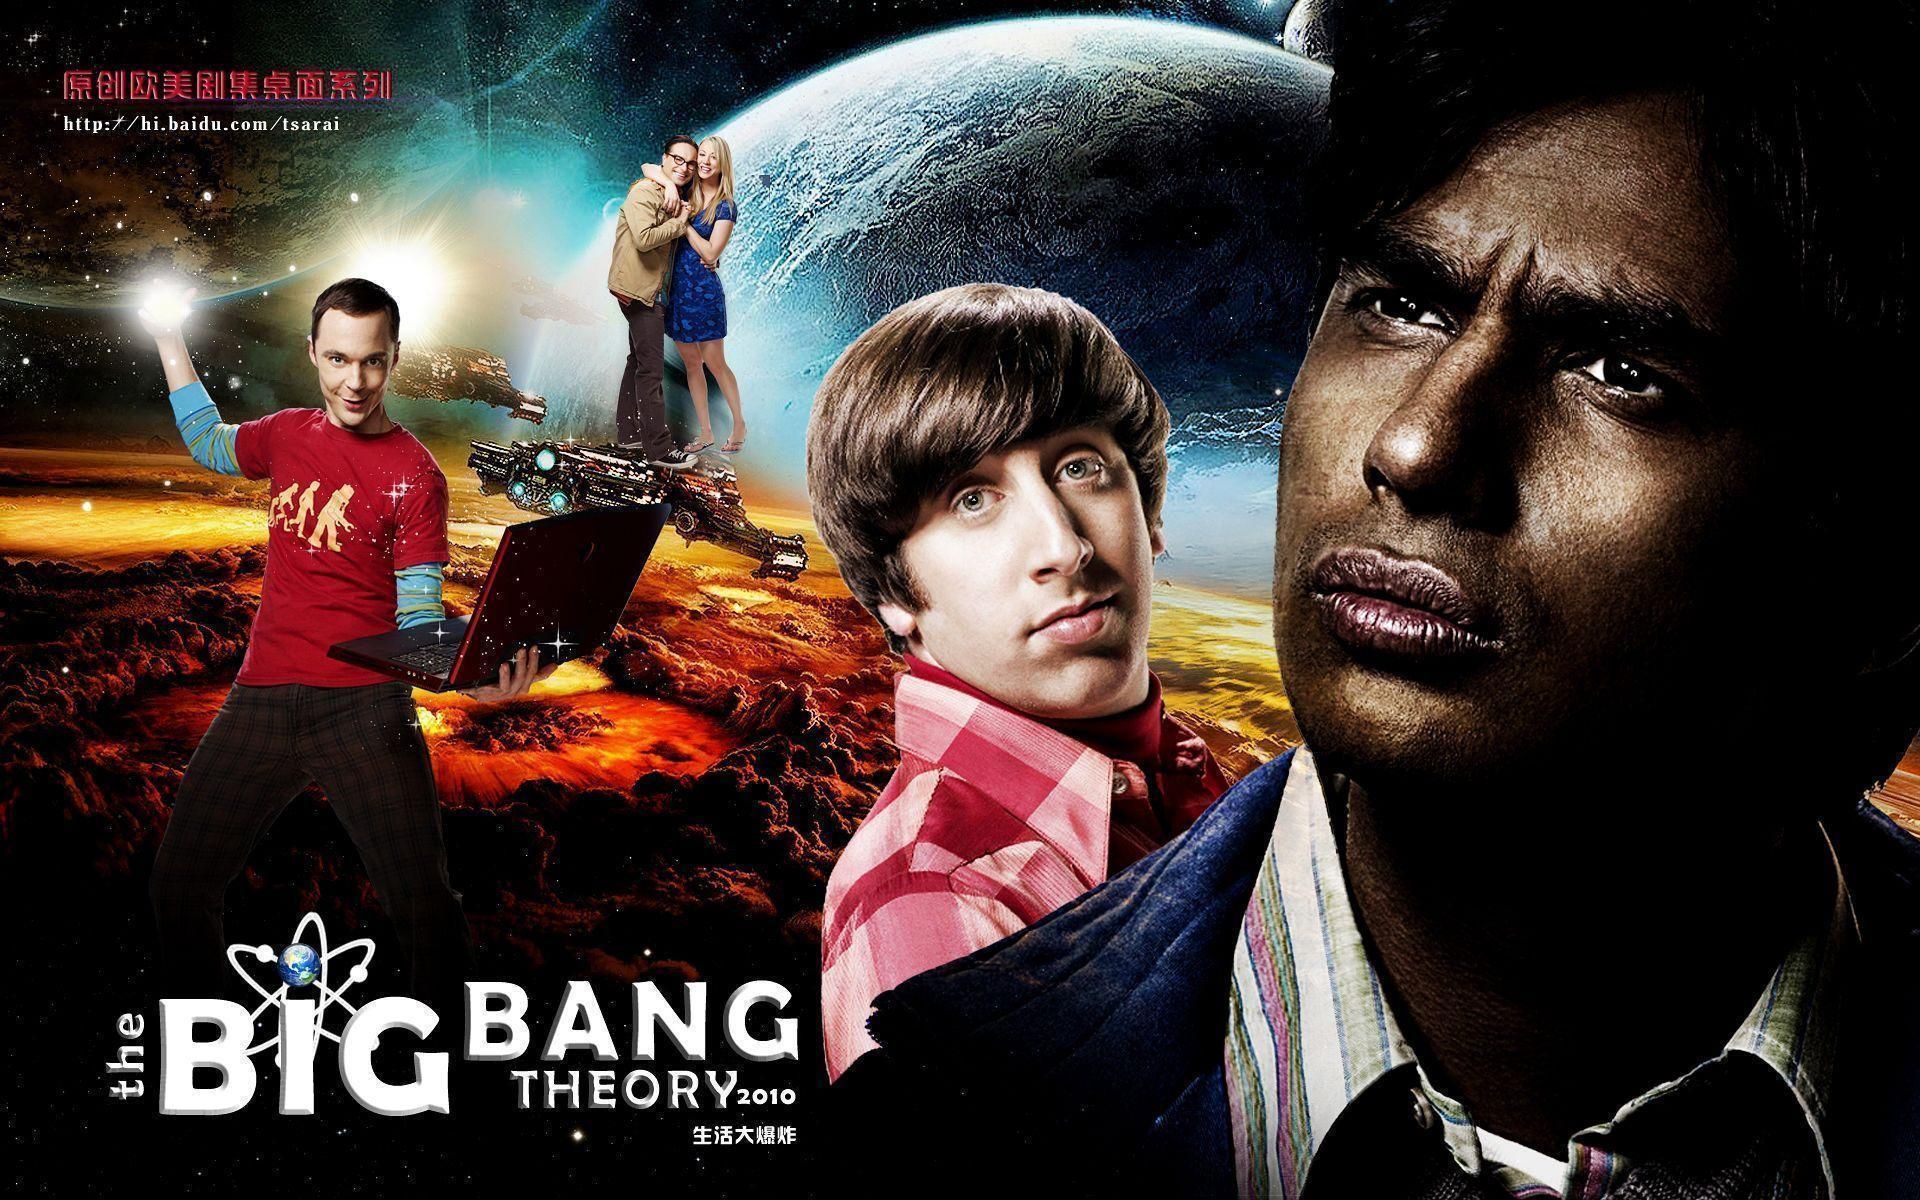 the big bang theory 生活大爆炸 - The Big Bang Theory Wallpaper ...